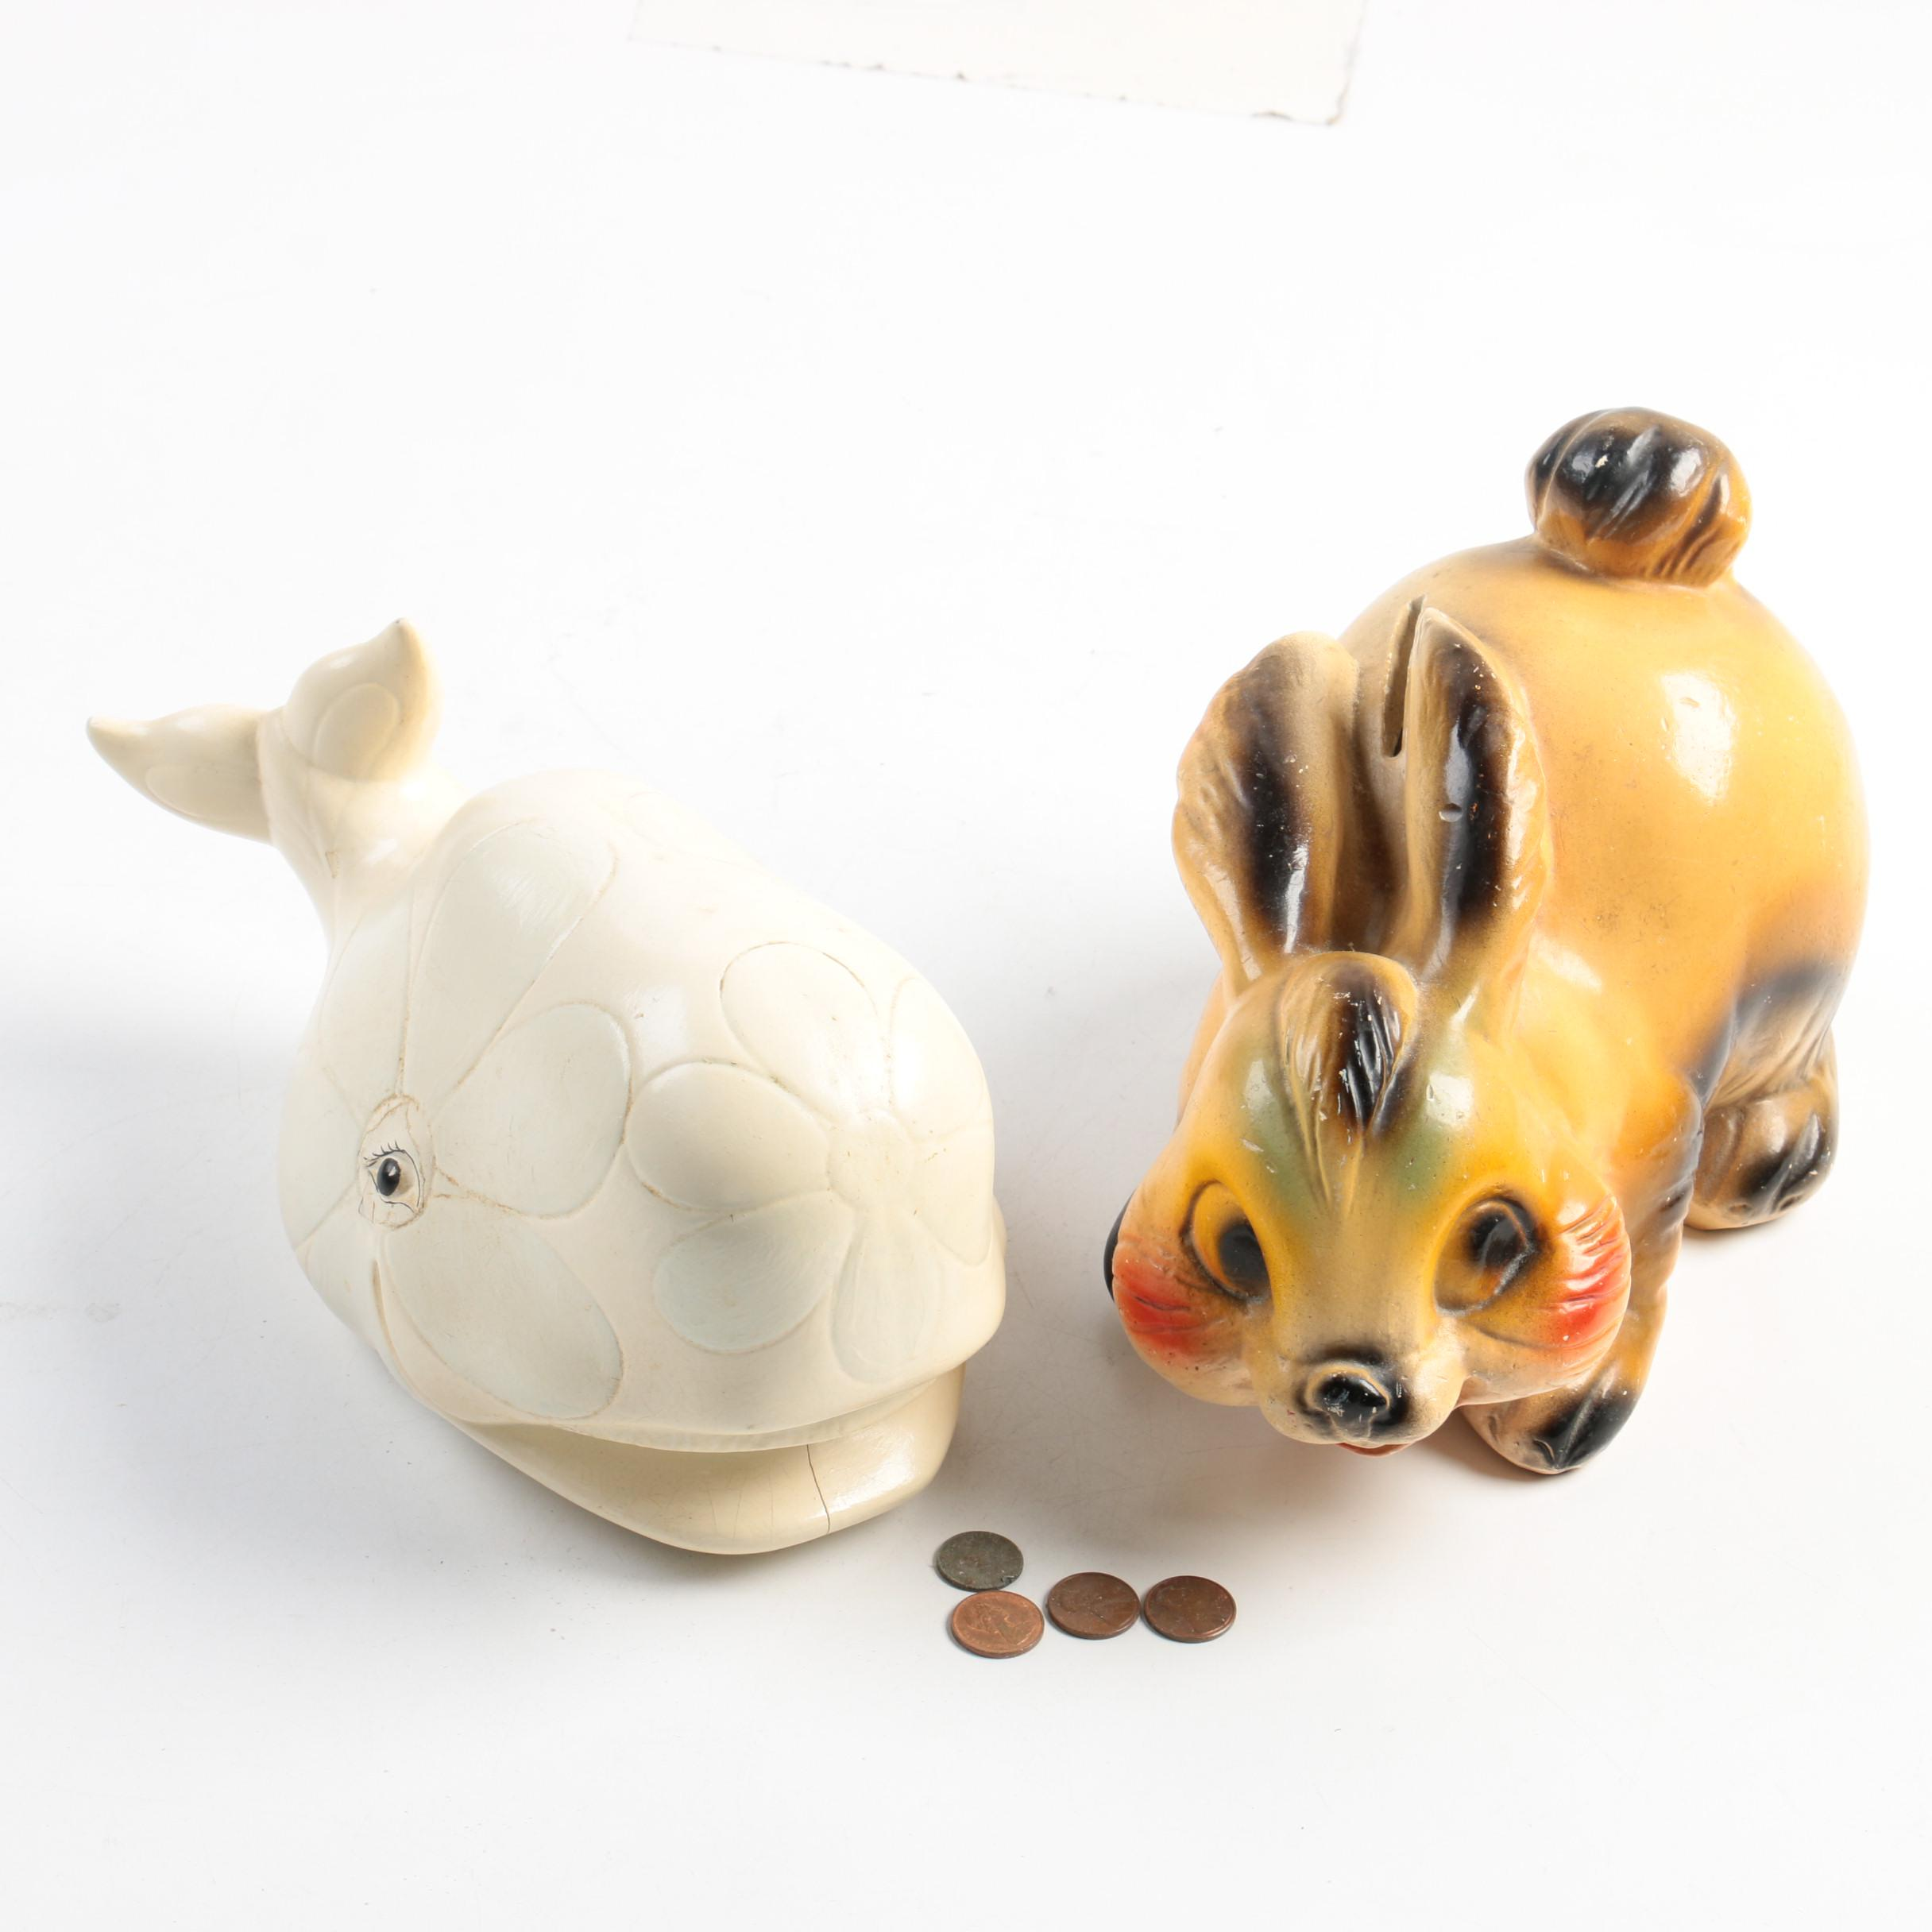 Ceramic Whale And Rabbit Coin Banks